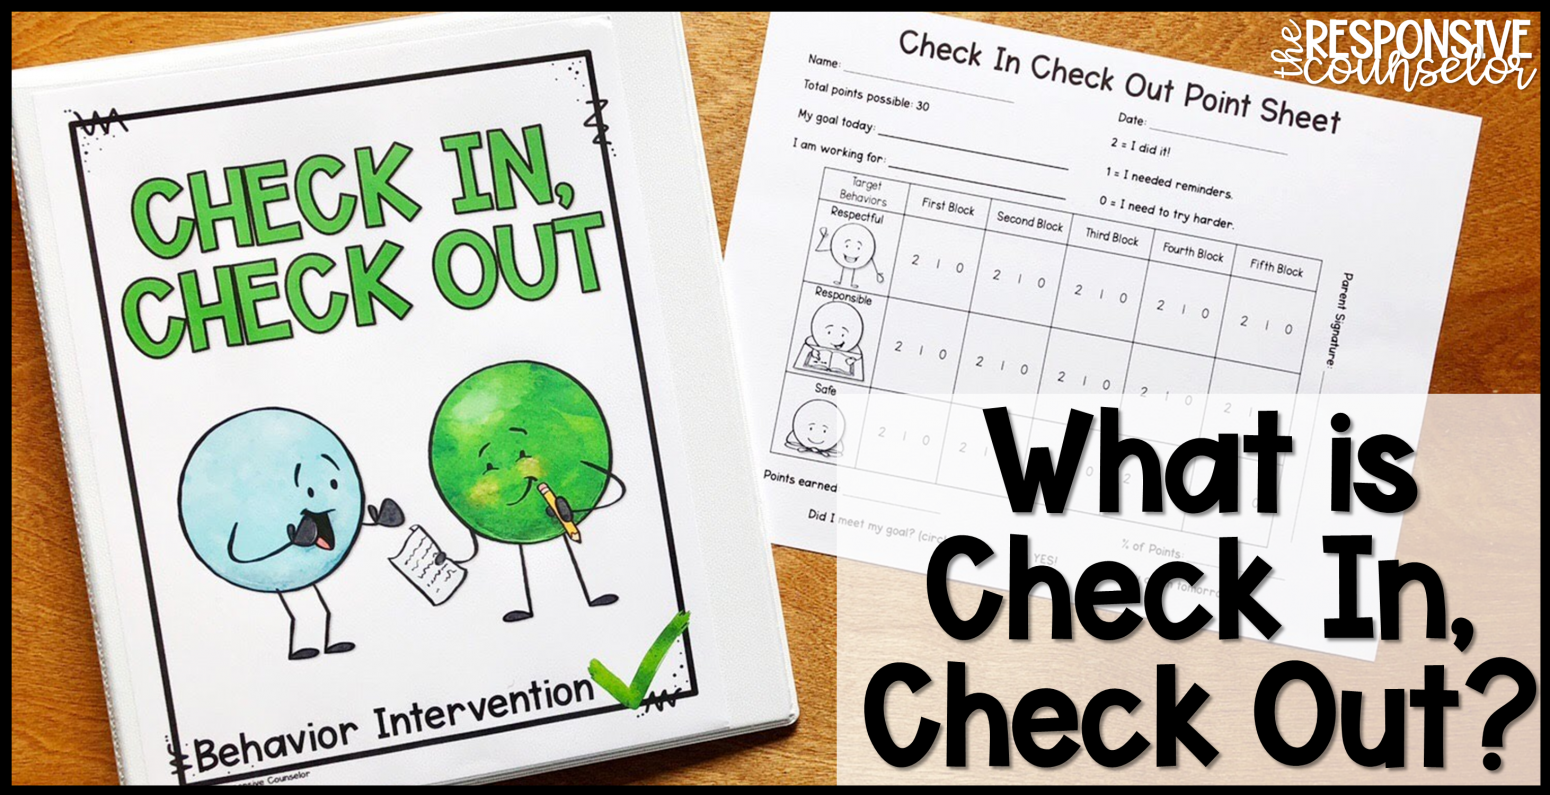 Check In Check Out Behavior Intervention